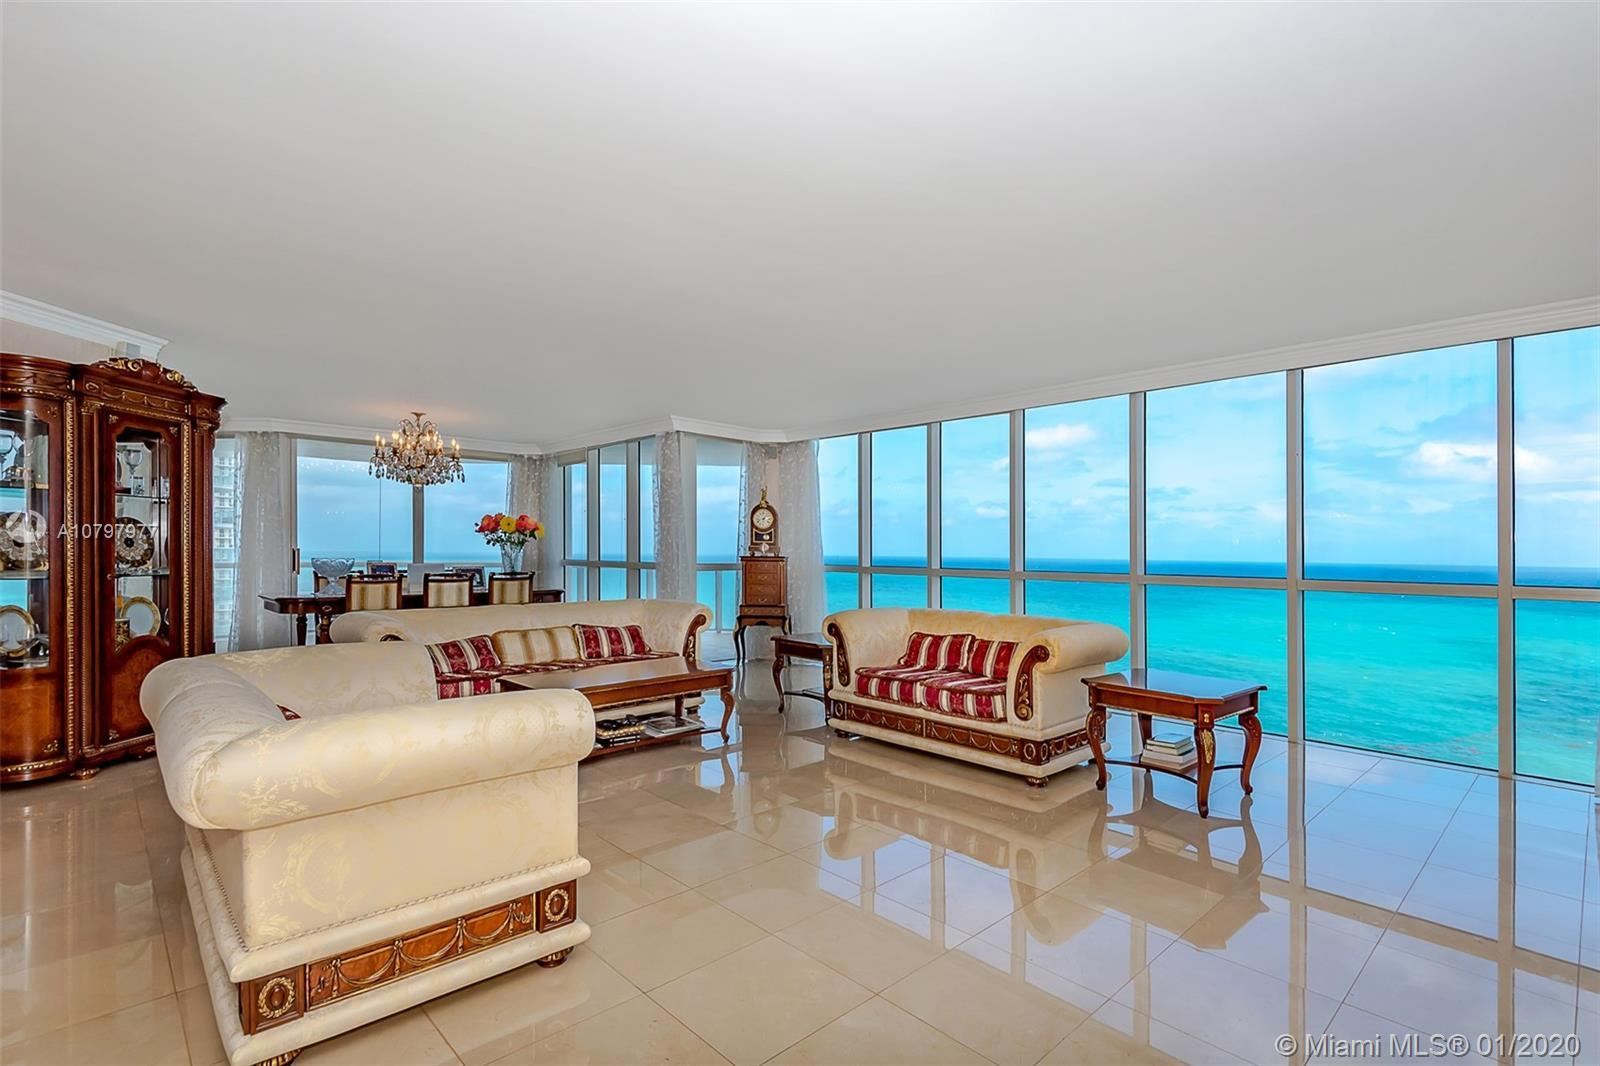 Spectacular corner unit, unobstructed direct Ocean view from every room, remodel kitchen, and bathro